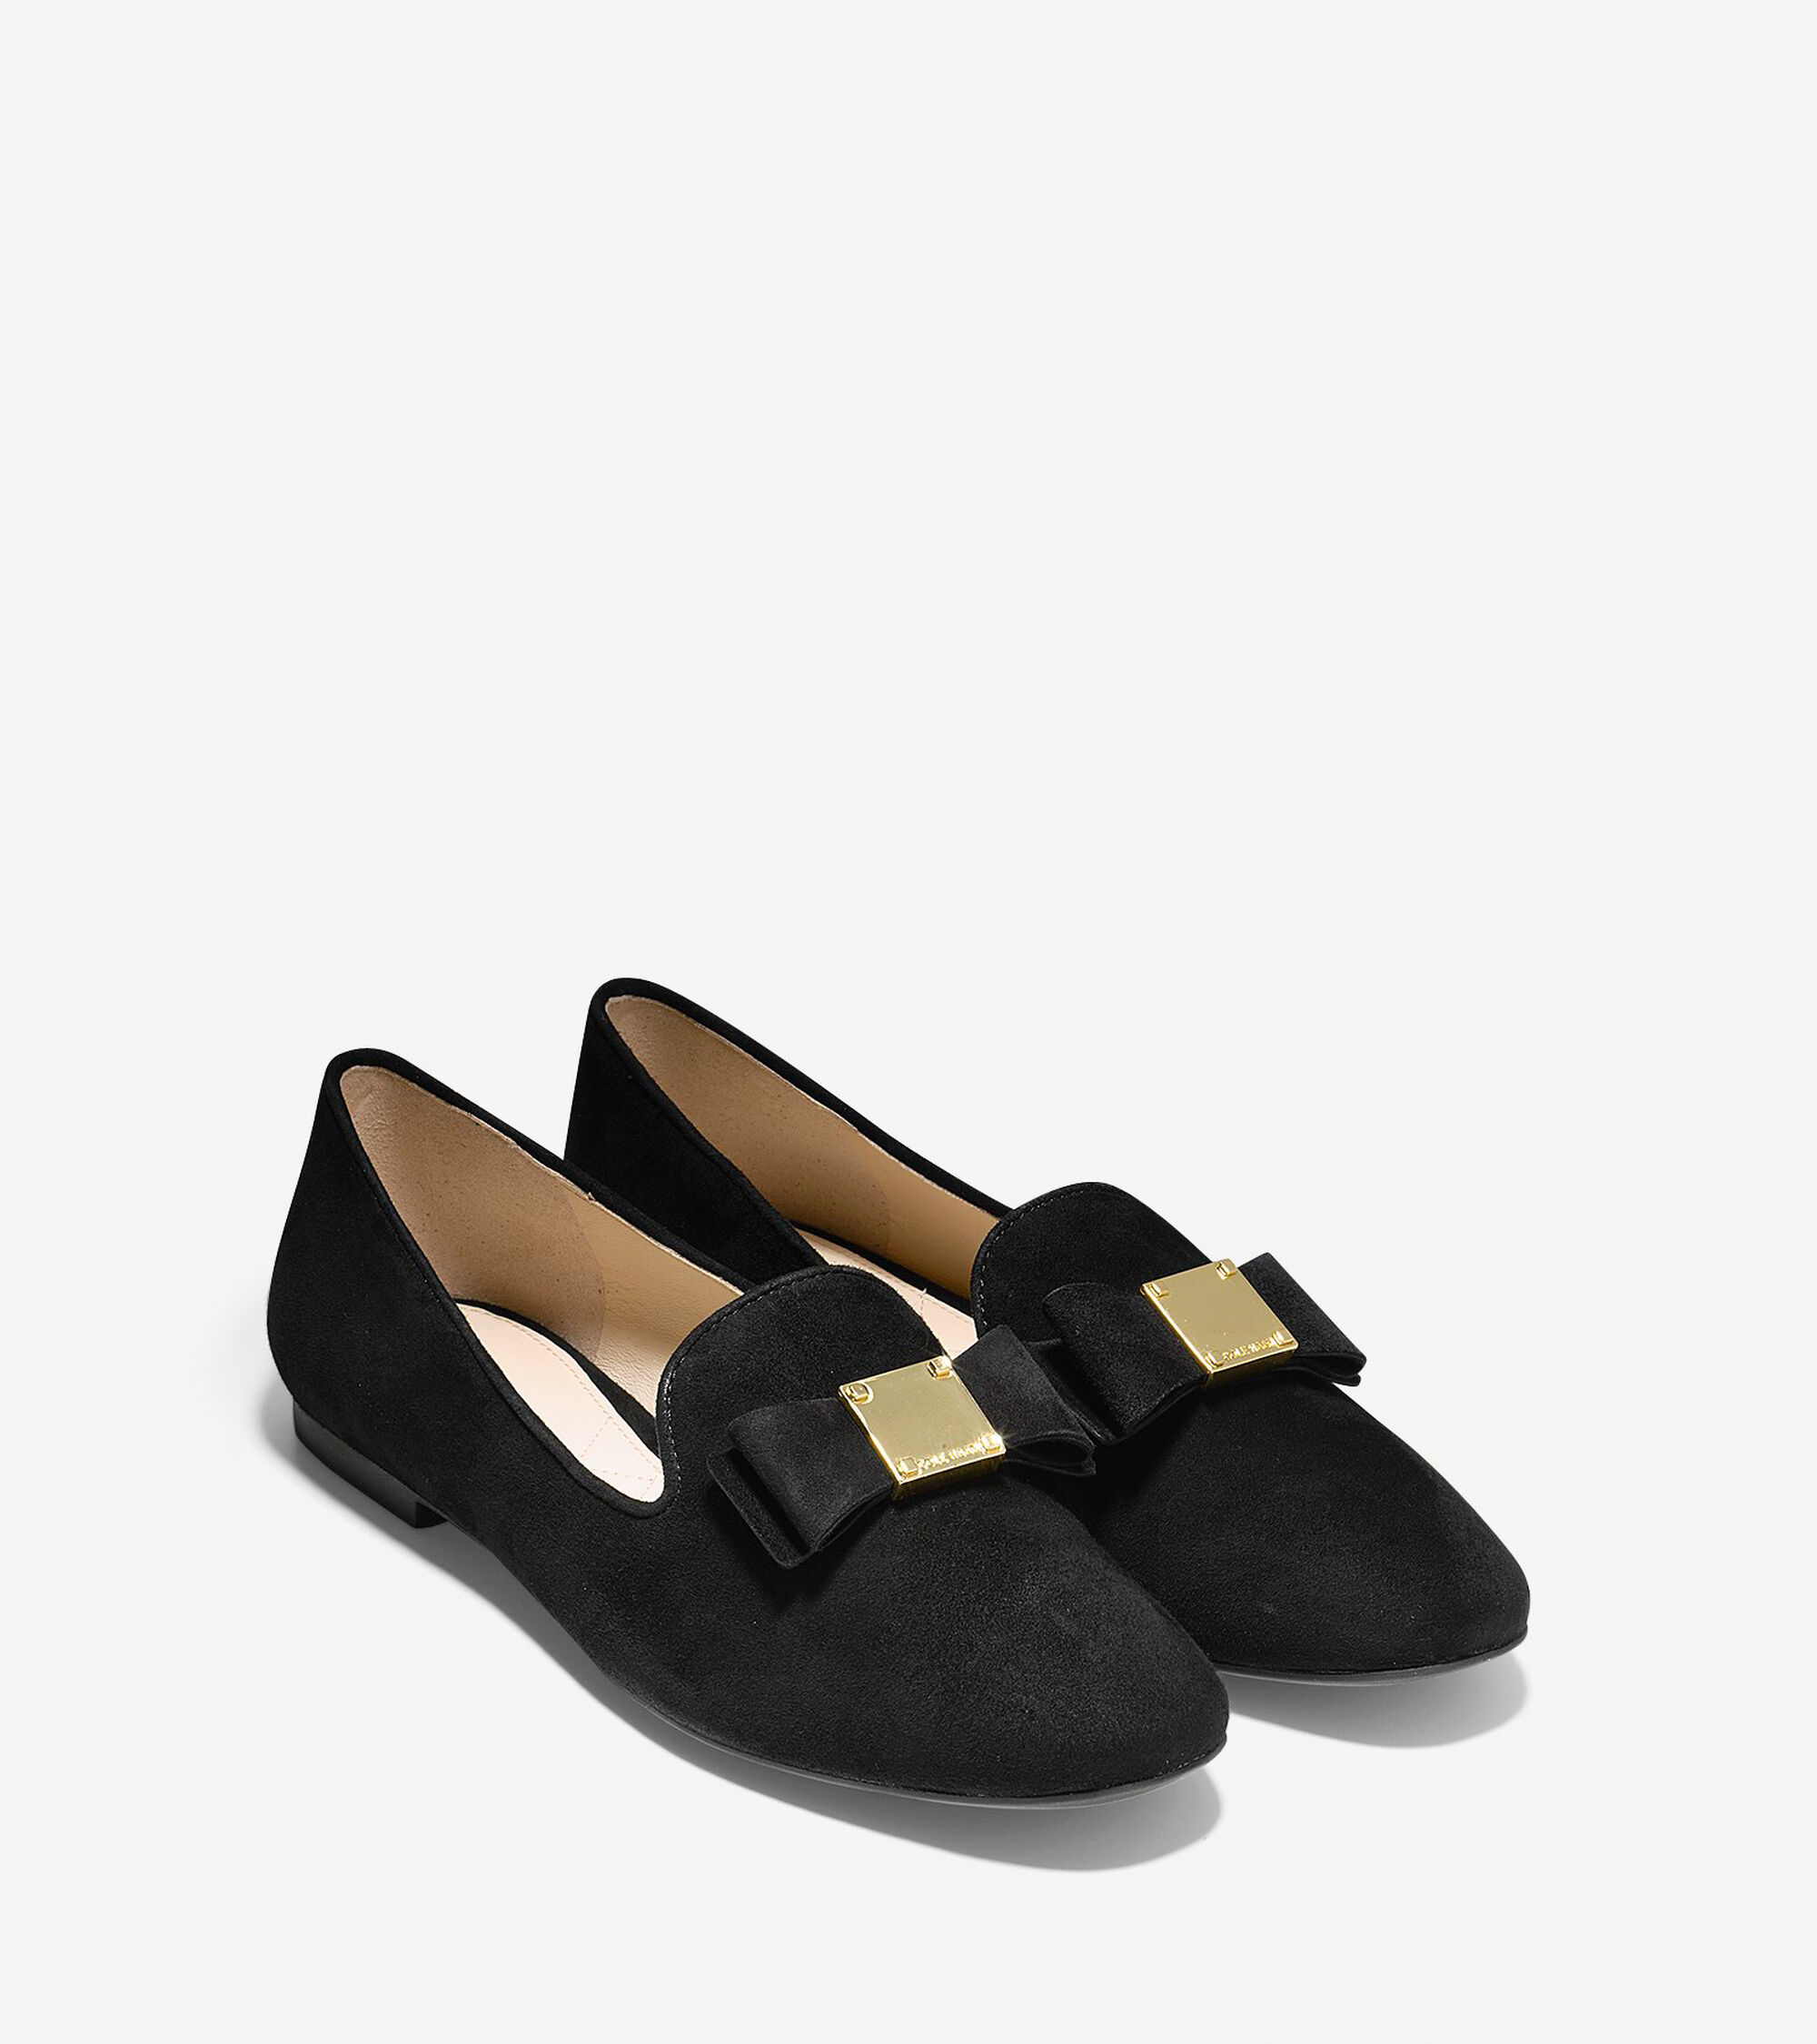 7685d346f5b ... Tali Bow Loafer  Tali Bow Loafer.  COLEHAAN